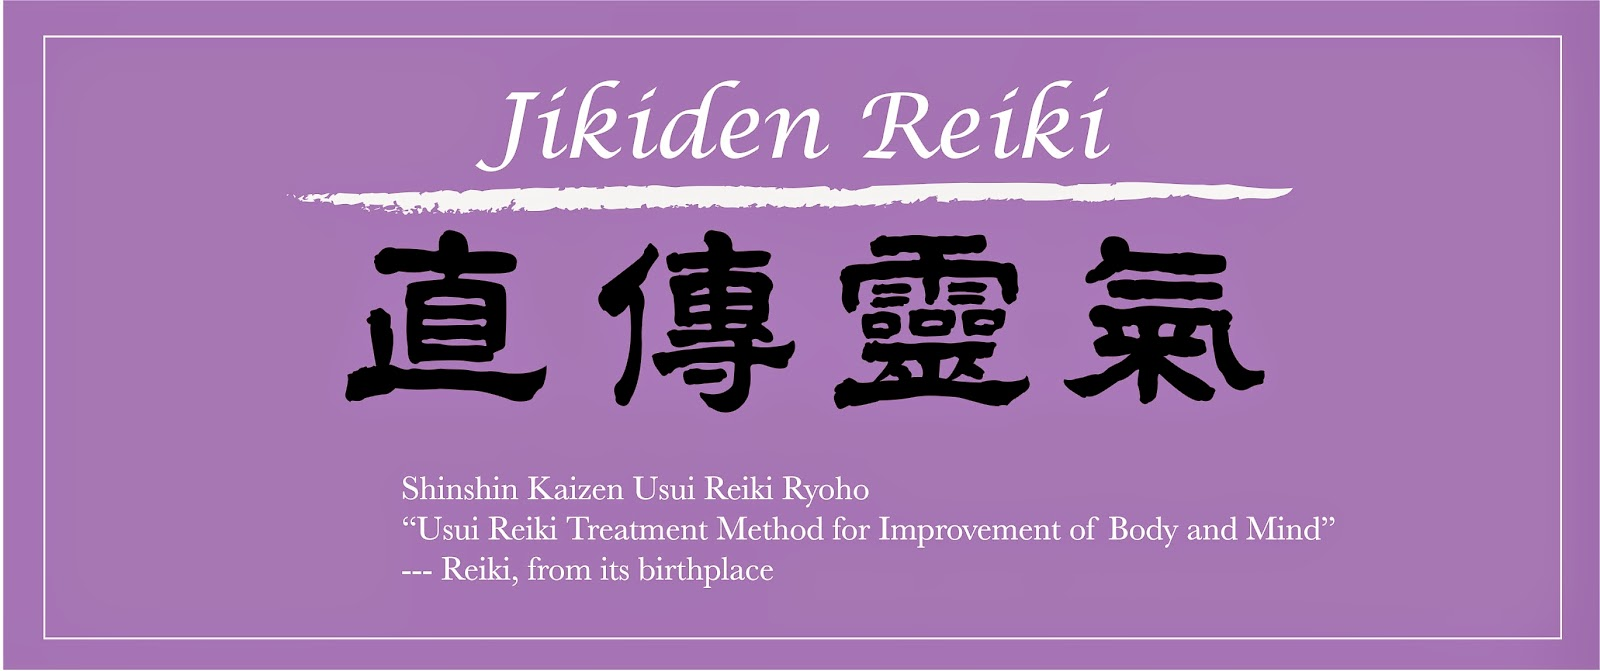 Why do i have to learn jikiden reiki from the beginning when i am why do i have to learn jikiden reiki from the beginning when i am already a master 3rd degree in usui reiki biocorpaavc Image collections